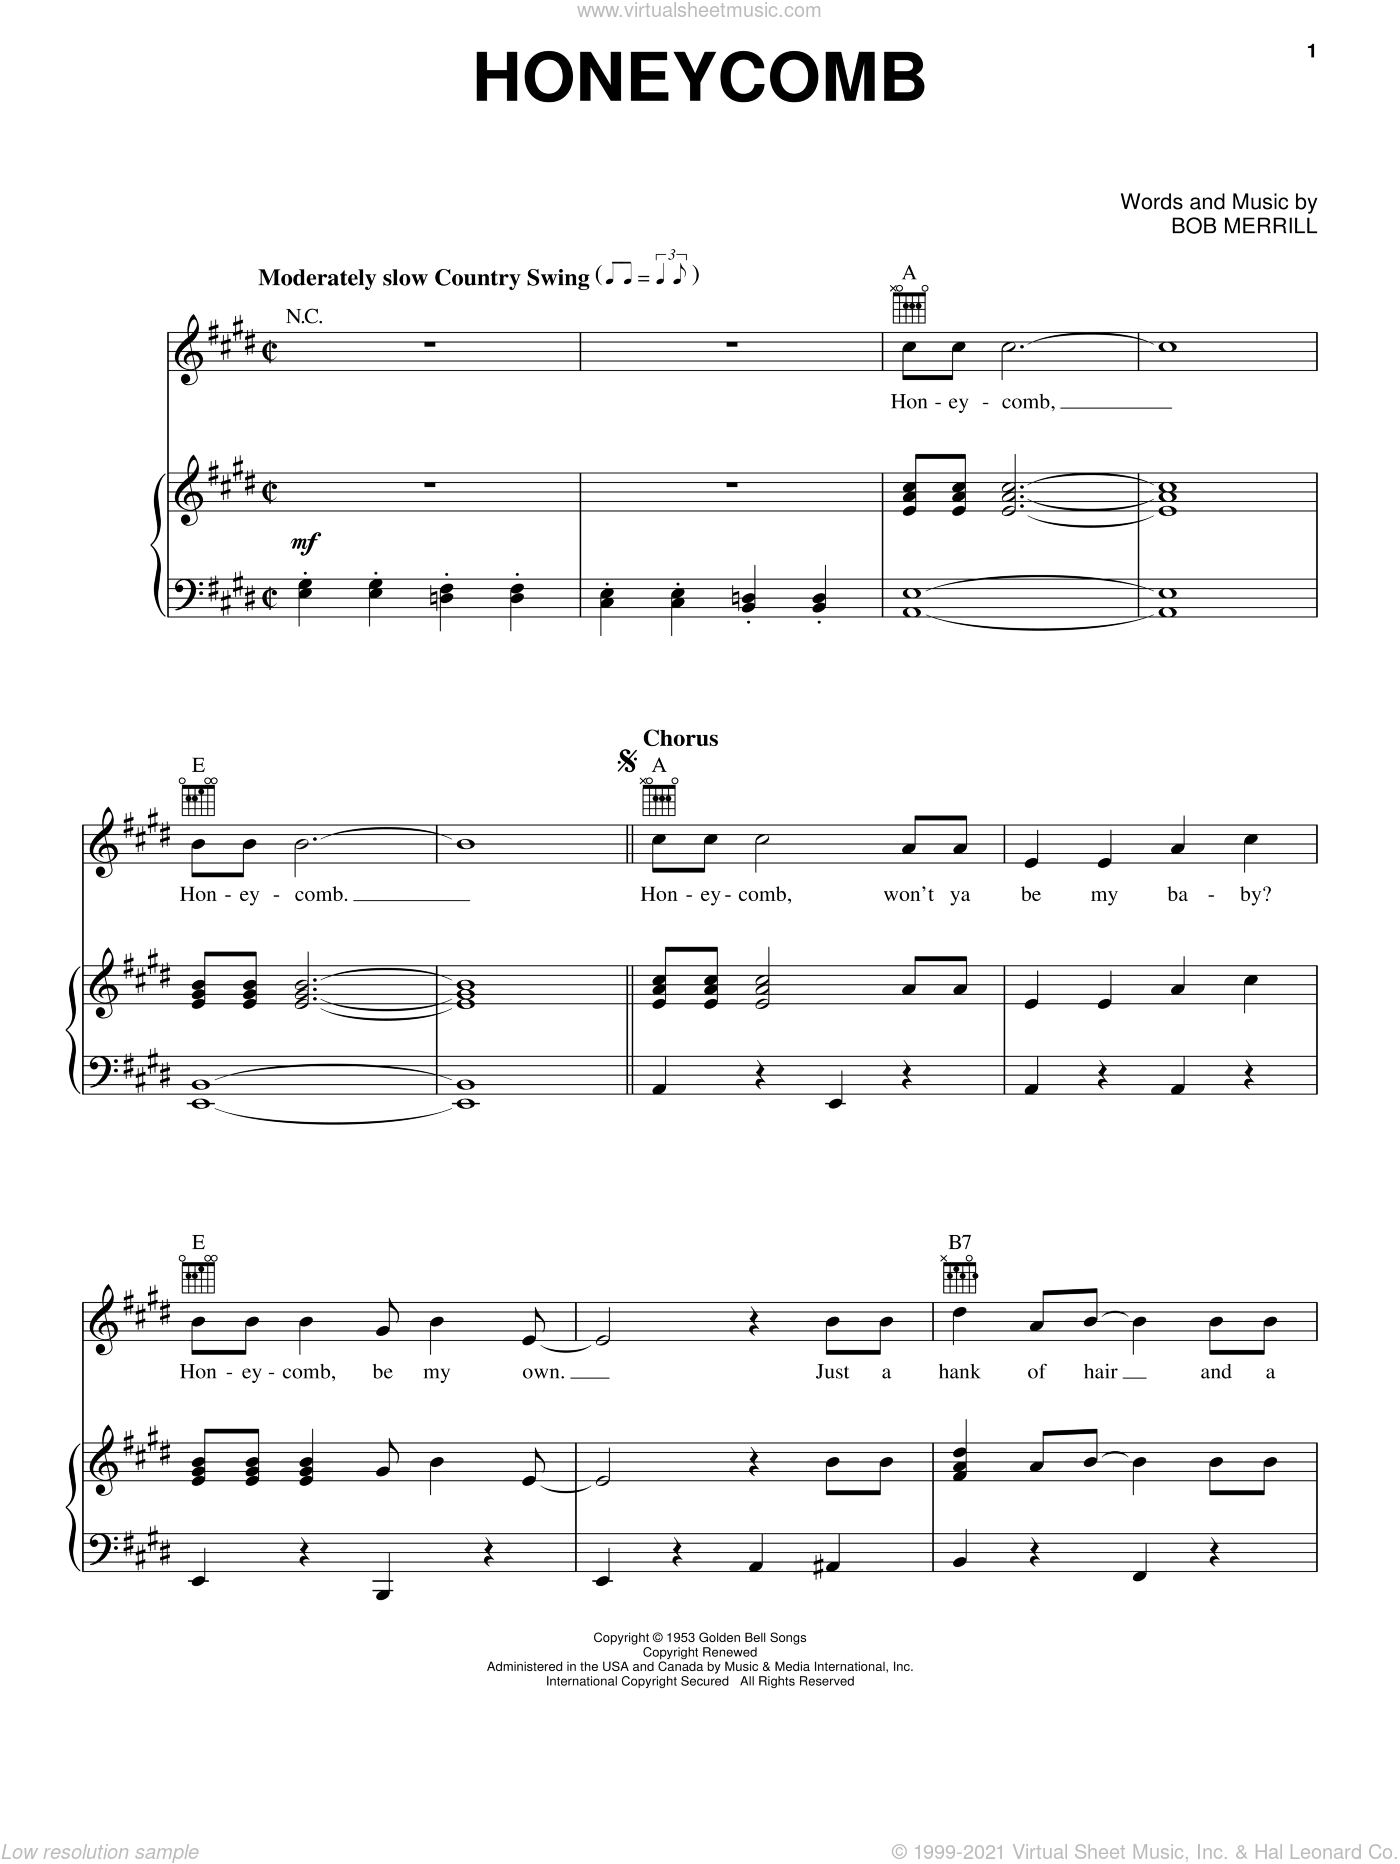 Honeycomb sheet music for voice, piano or guitar by Jimmie Rodgers and Bob Merrill, intermediate skill level